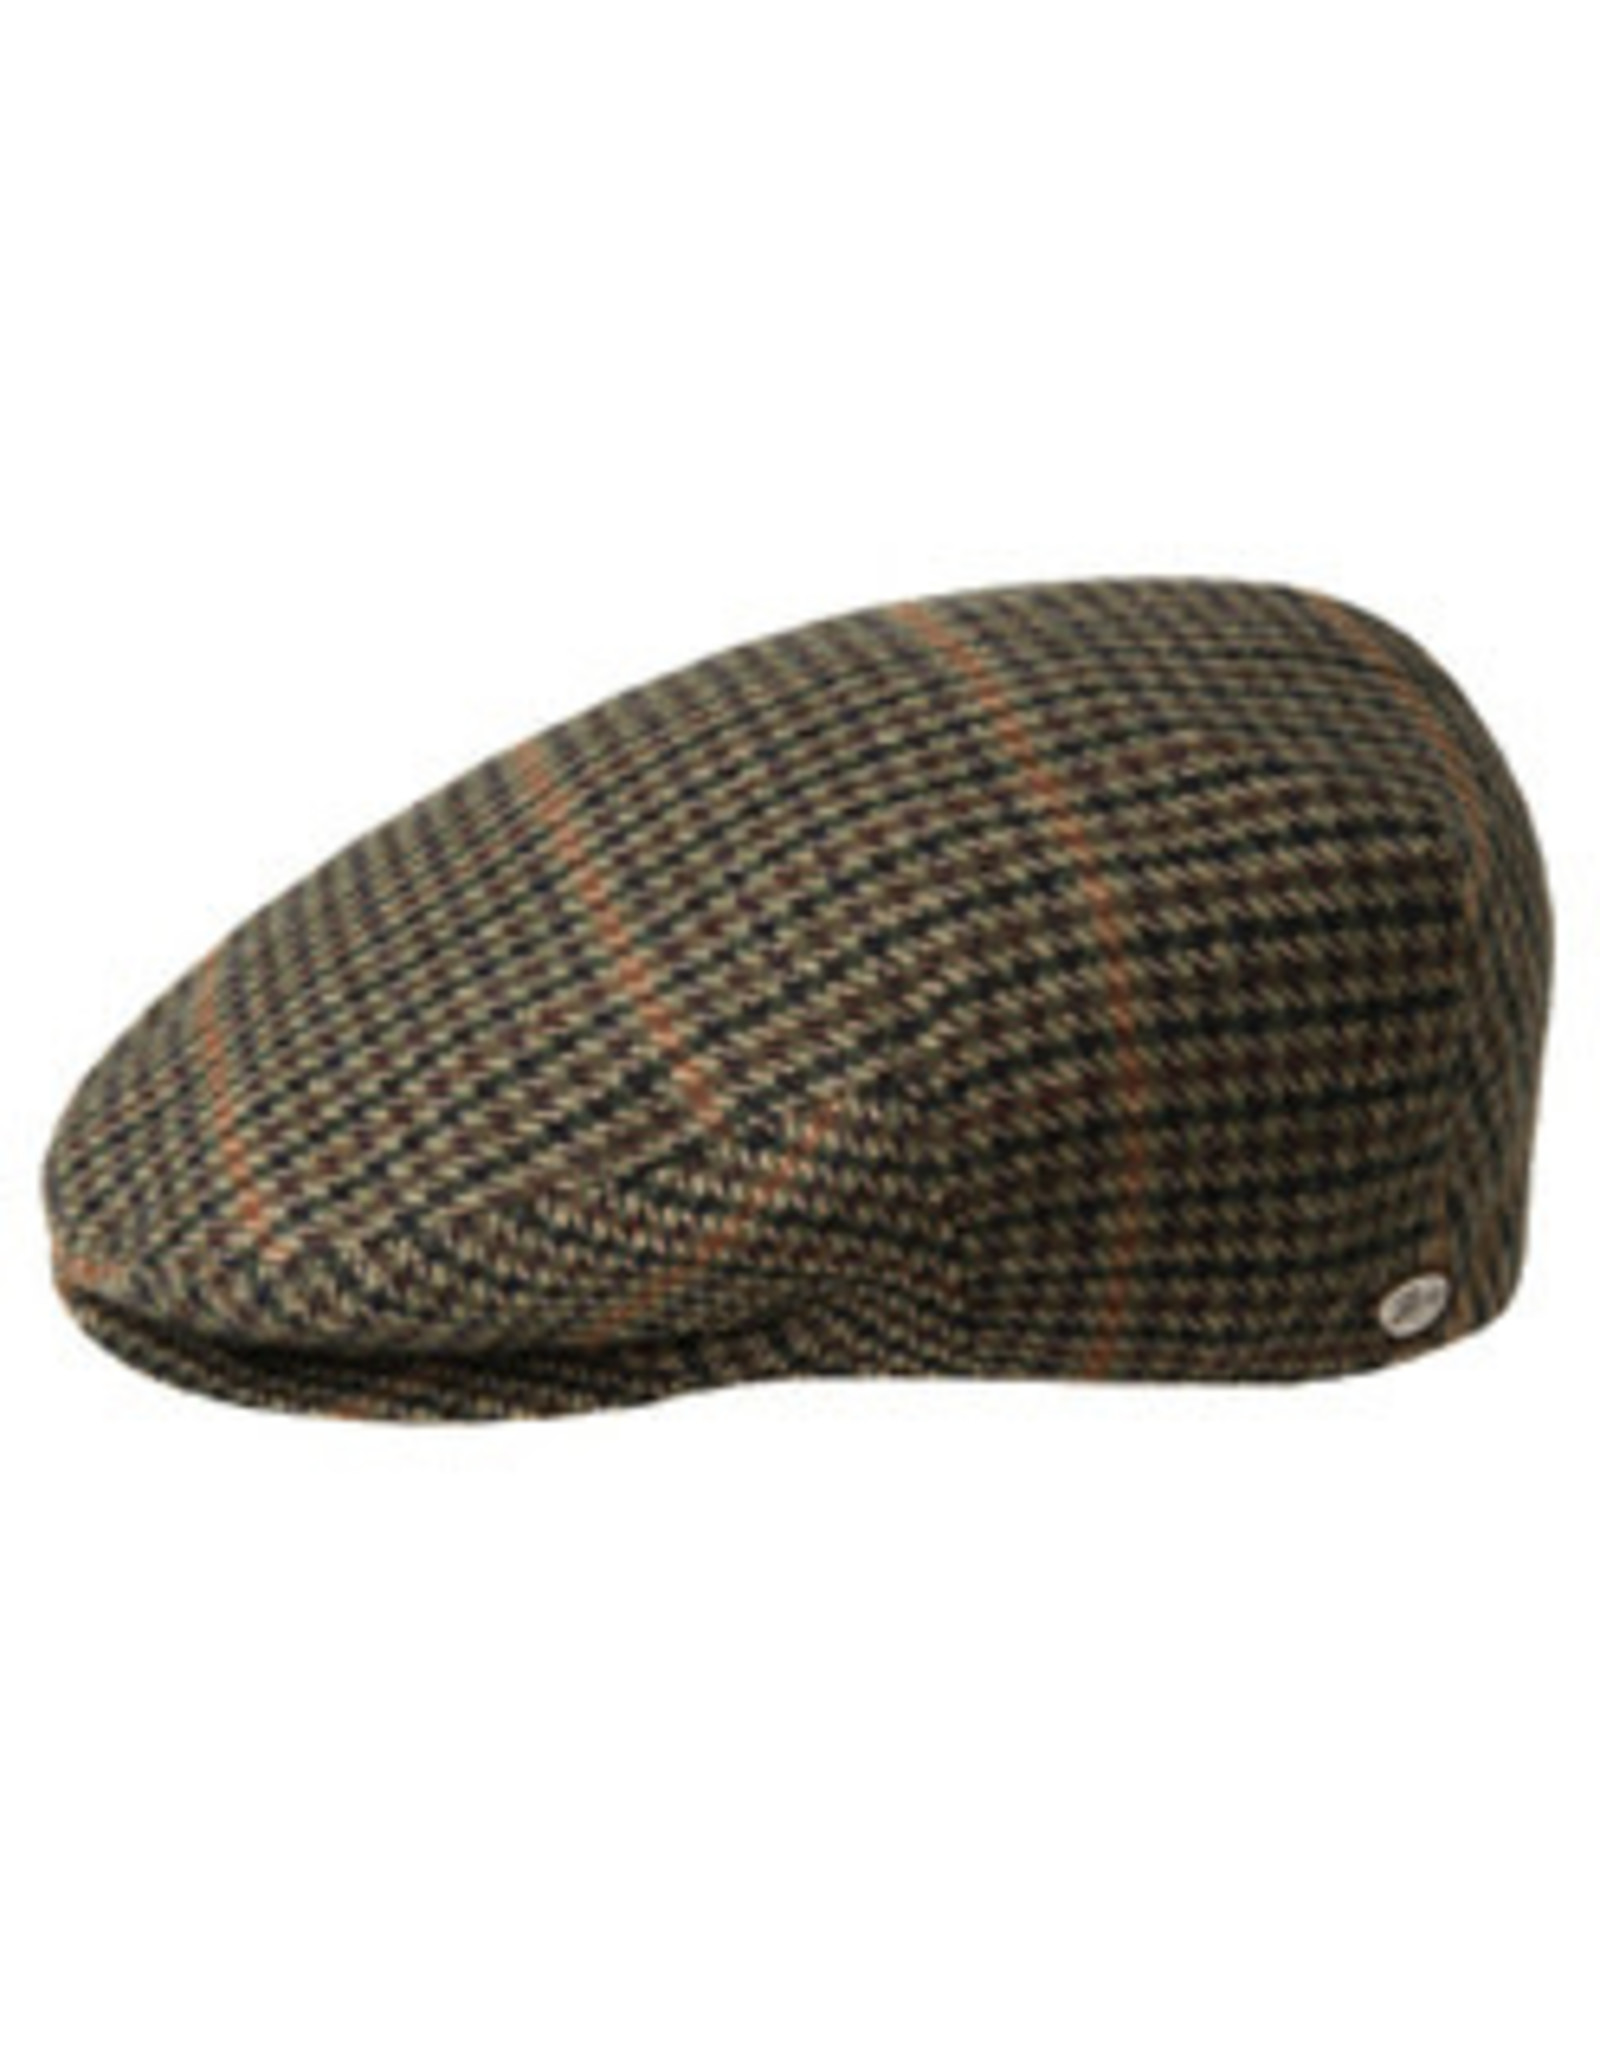 Bailey Hat Co. HAT-IVY CAP-LORD PLAID